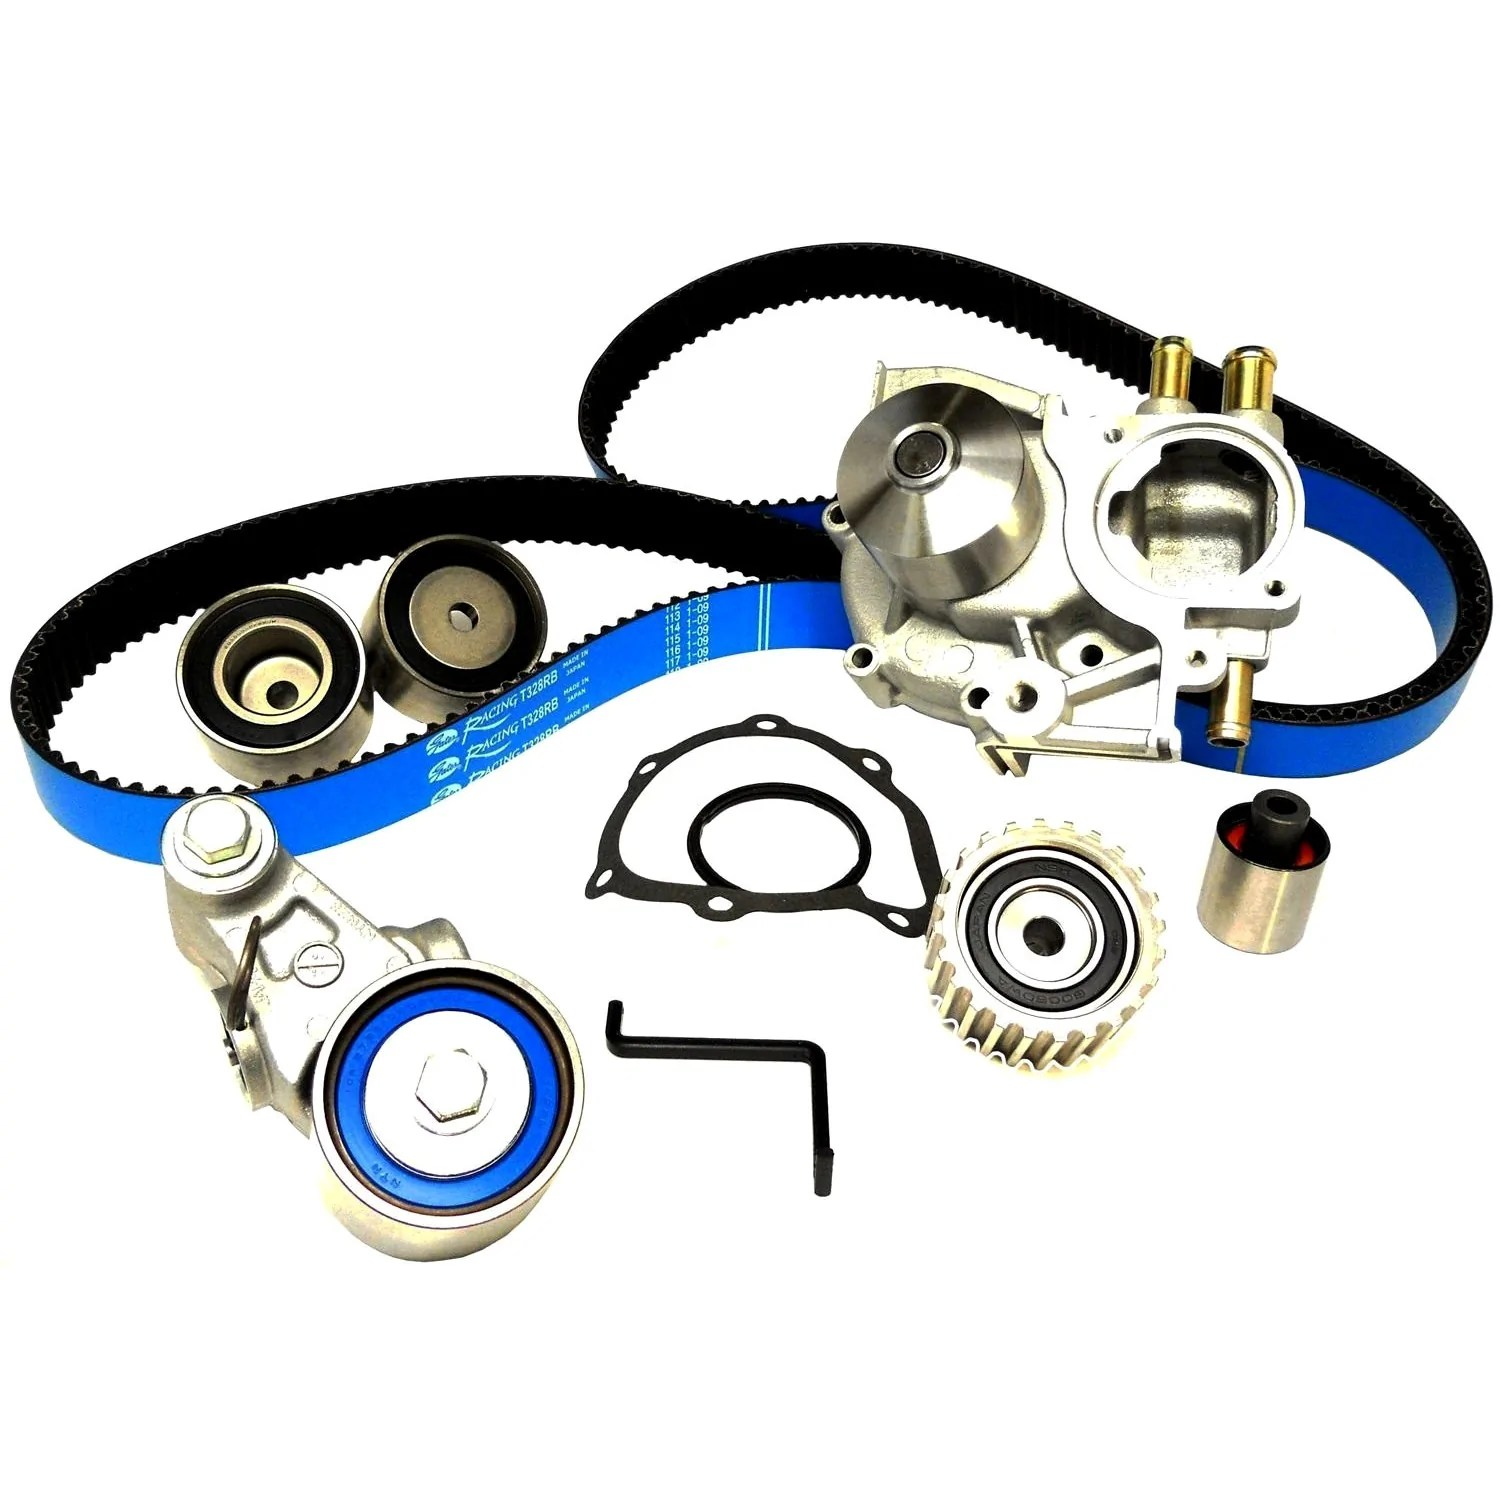 gates racing timing belt kit with water pump 2005 2009 legacy gt outback xt [ 1500 x 1500 Pixel ]